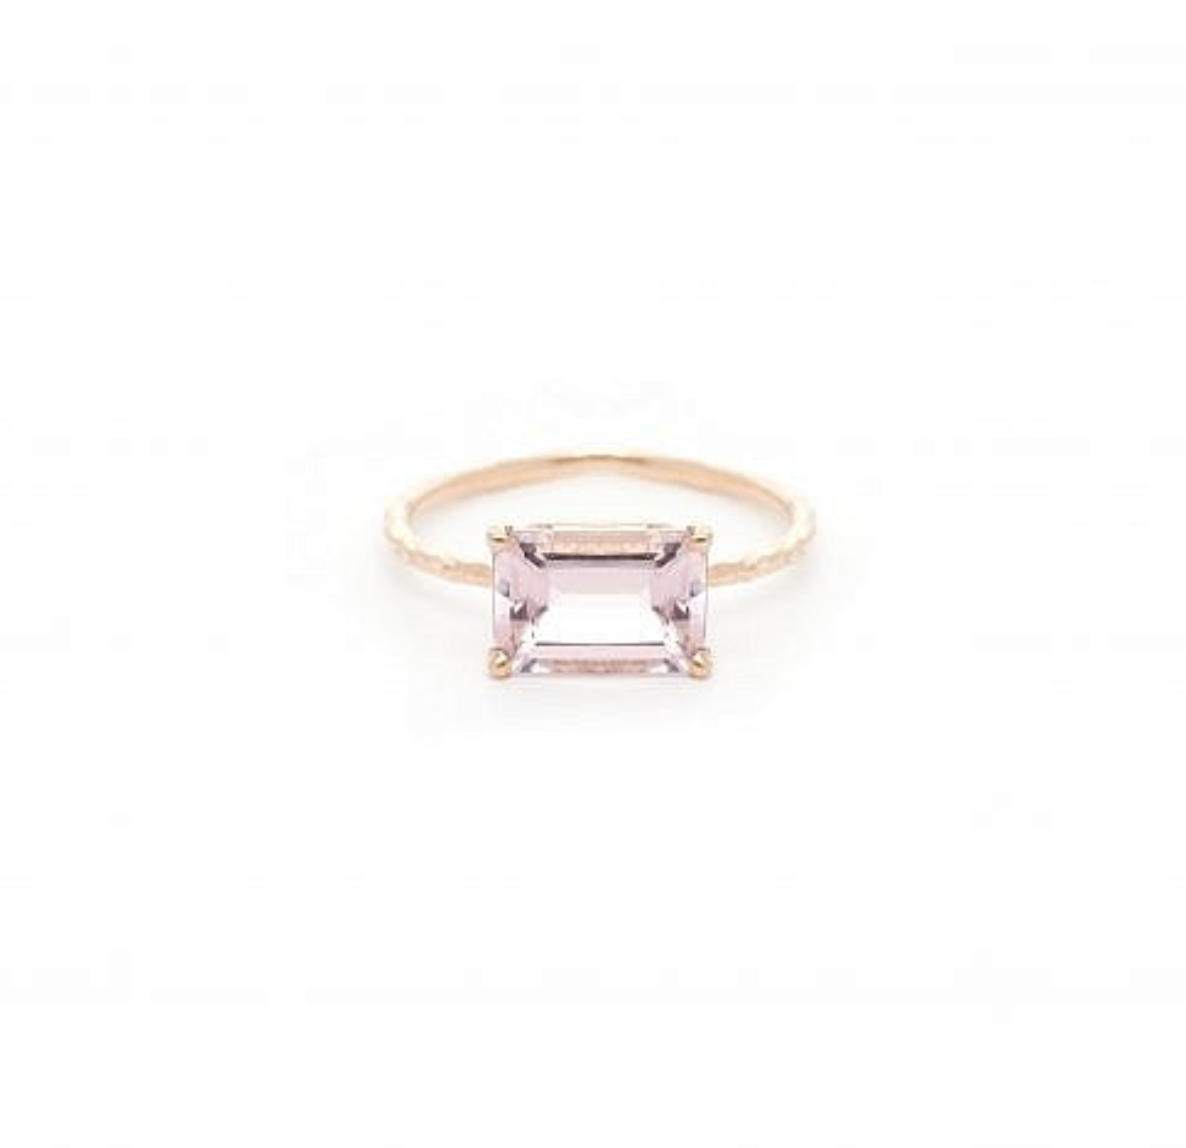 My Favorite Jewelry Designers For Unique Jewelry: Jane Pope Jewelry EMERALD CUT PINK MORGANITE RING